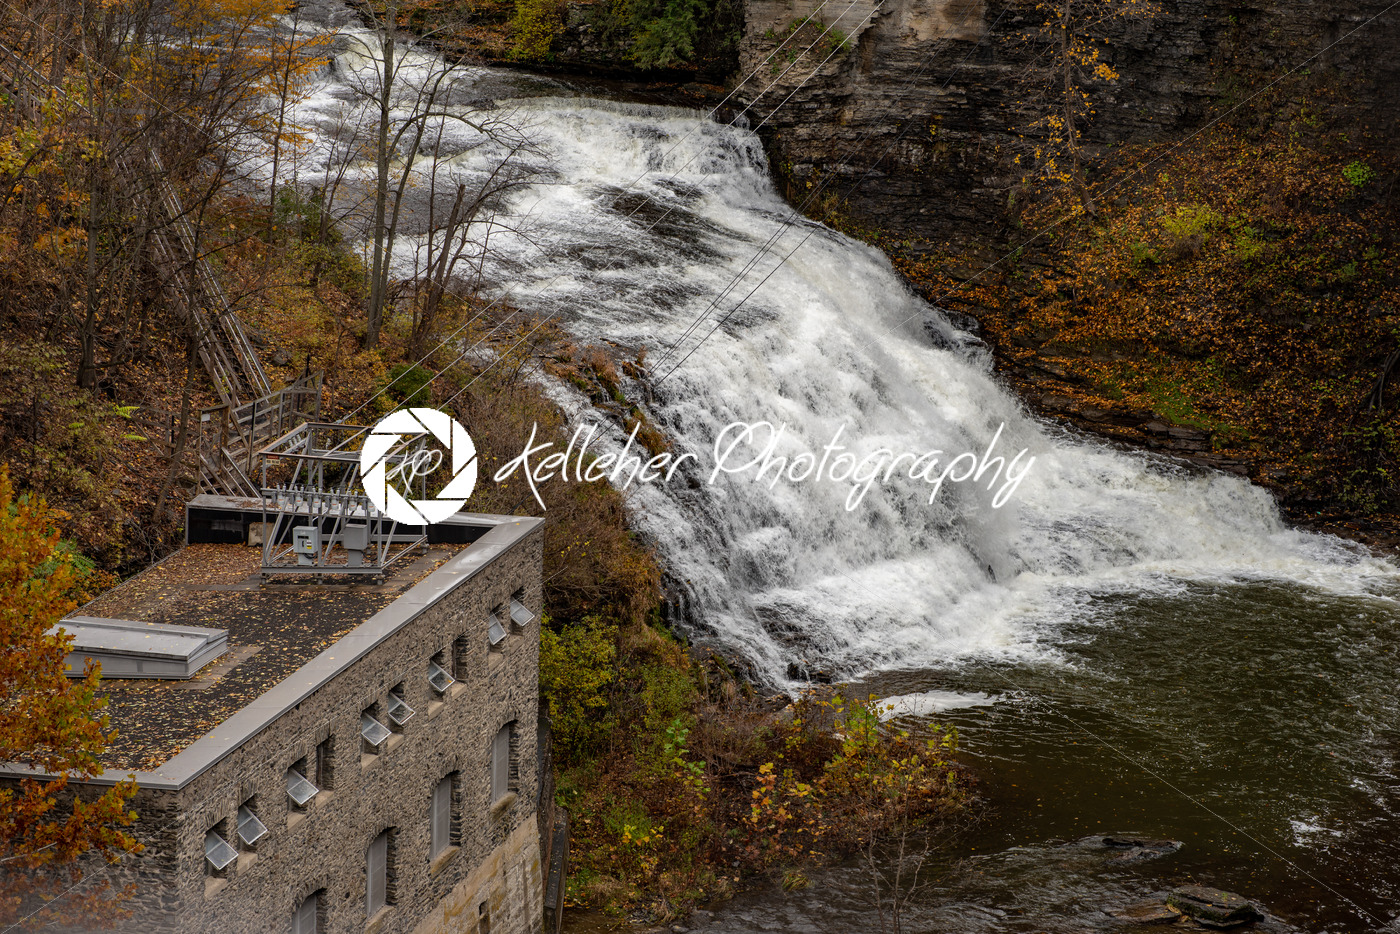 Pedestrian Suspension Bridge over Triphammer Falls, Ithaca, New York. Waterfall in the middle of Cornell University campus - Kelleher Photography Store